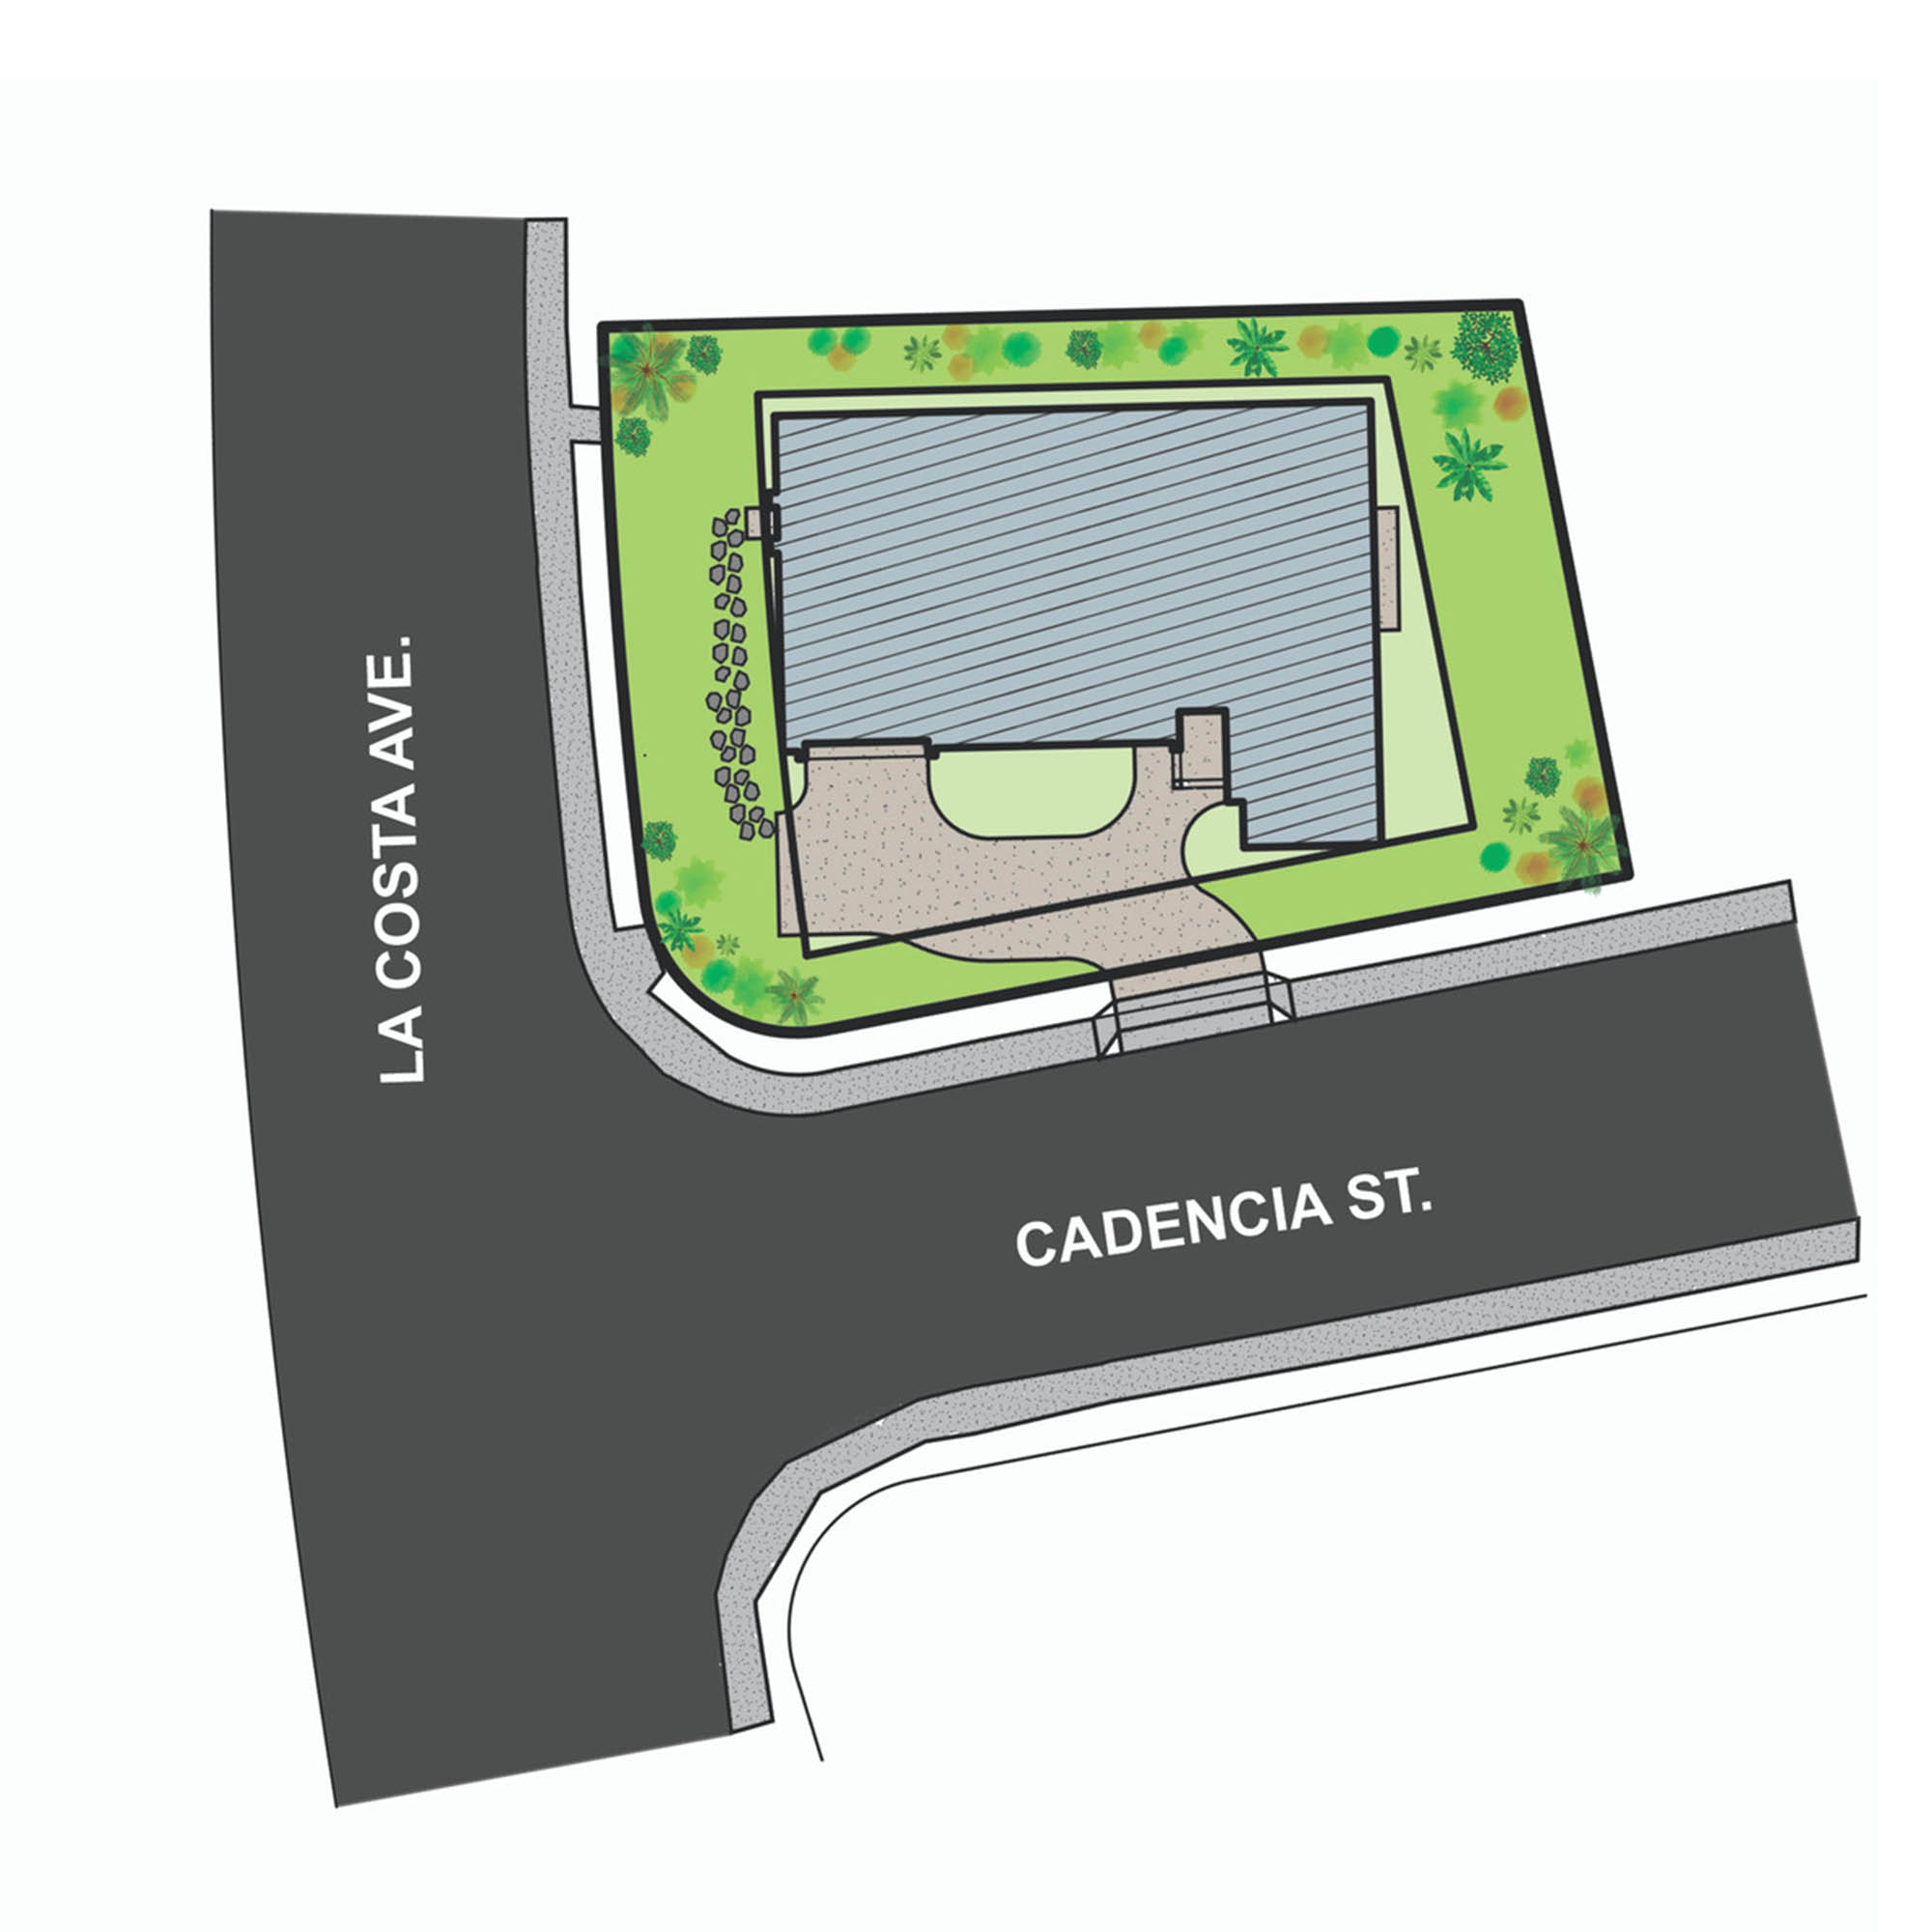 la-costa-site-plan-thumb